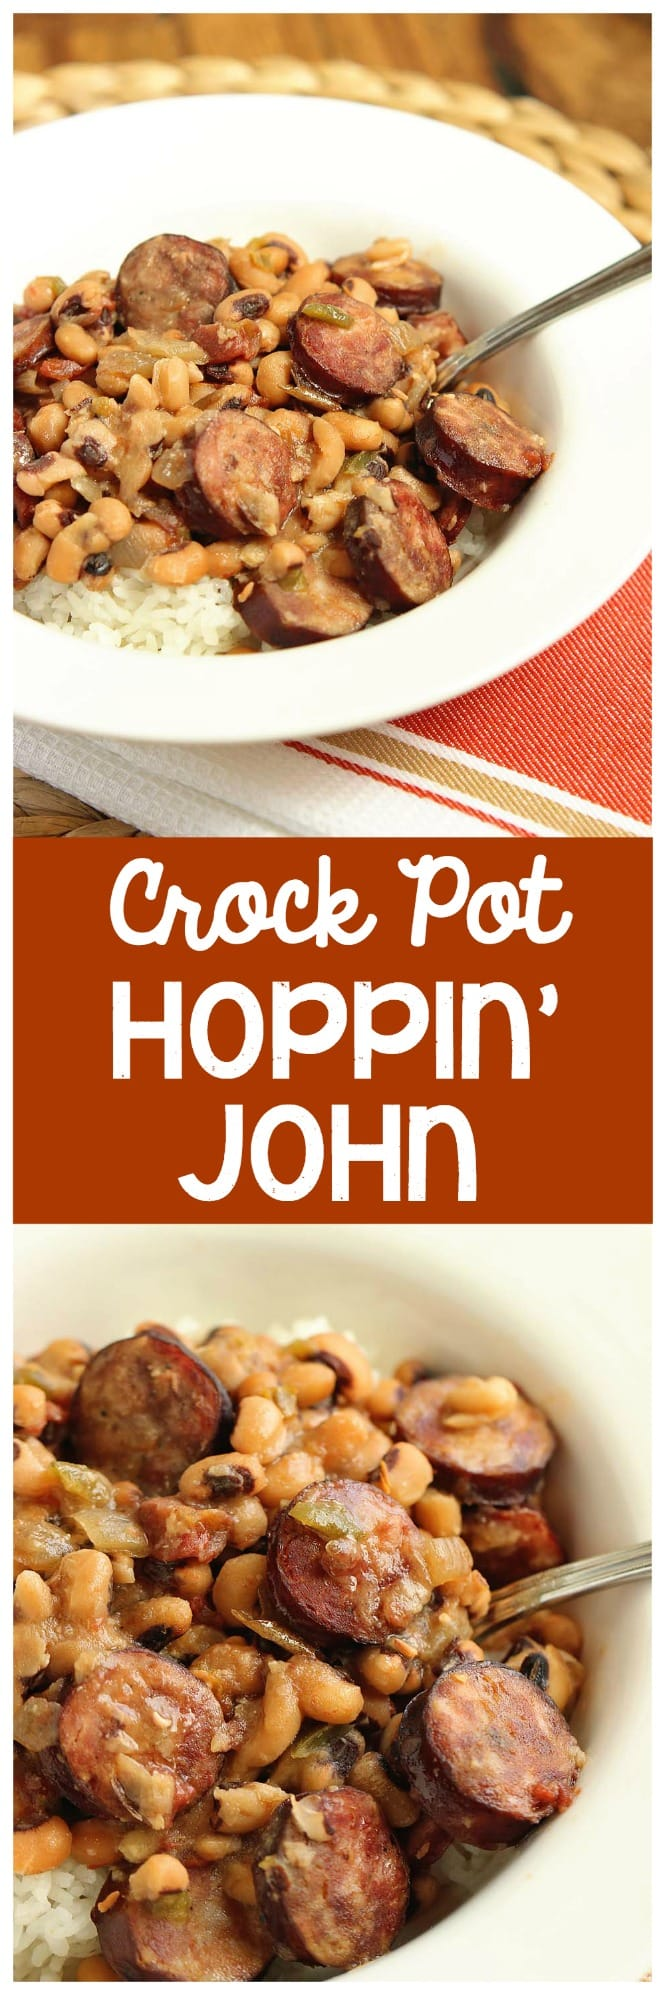 Crockpot Hoppin' John - This slow cooker meal uses only a few ingredients and couldn't be easier!